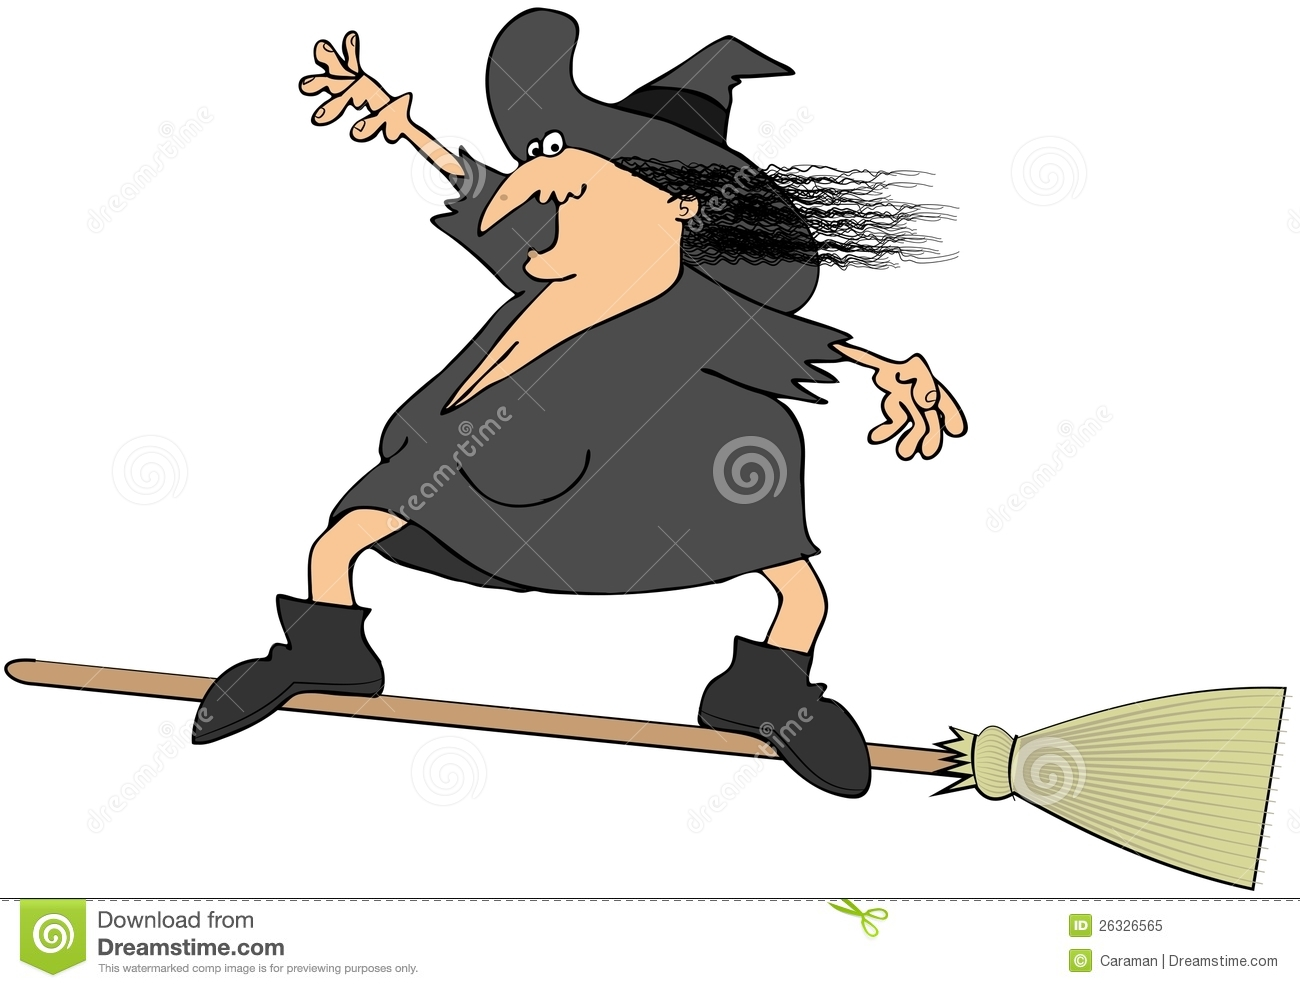 Witch Surfing On A Broom Royalty Free Stock Photo - Image: 26326565